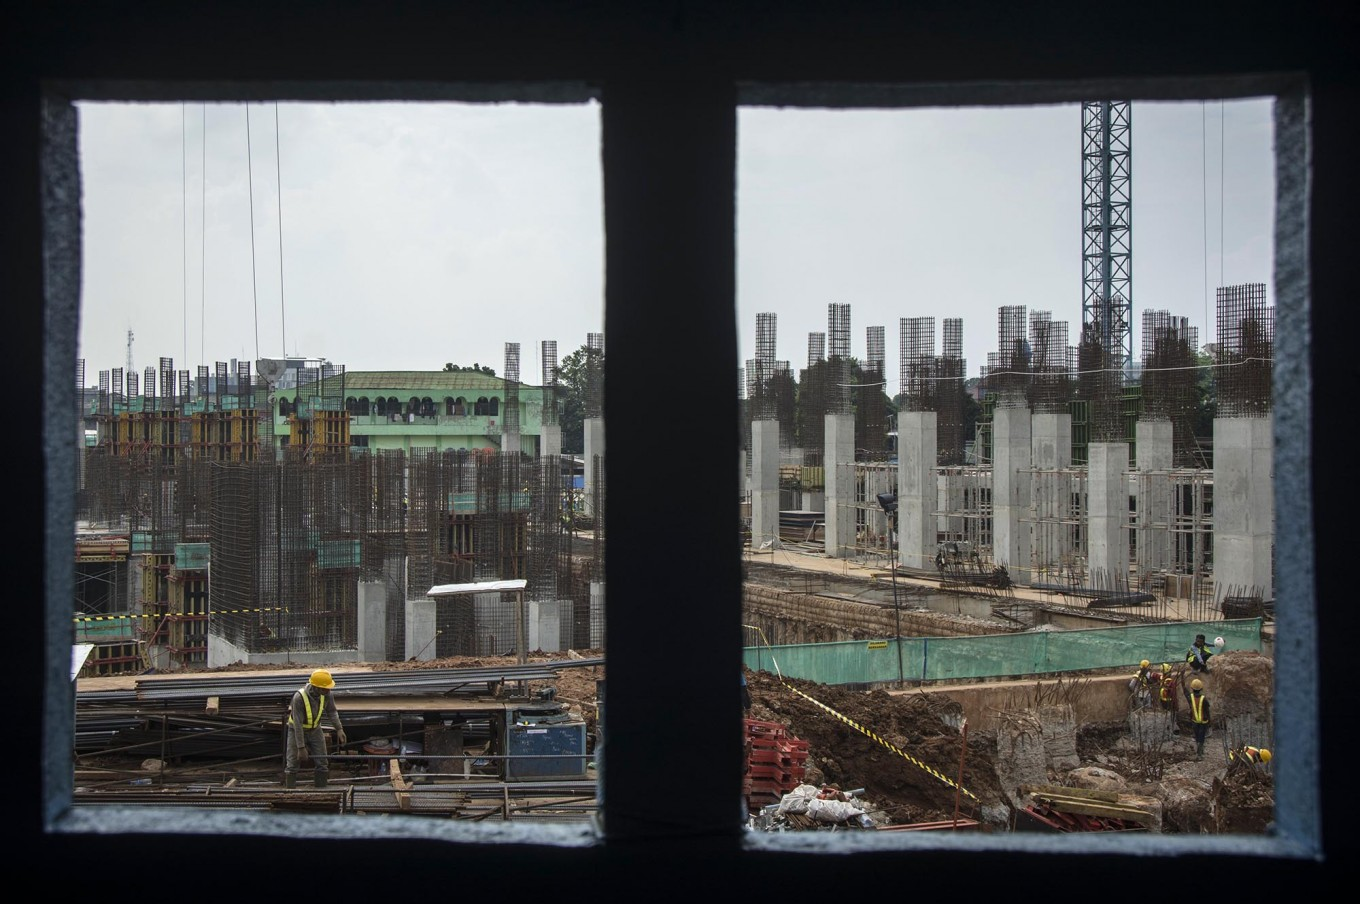 Jakarta drops low-cost apartment projects